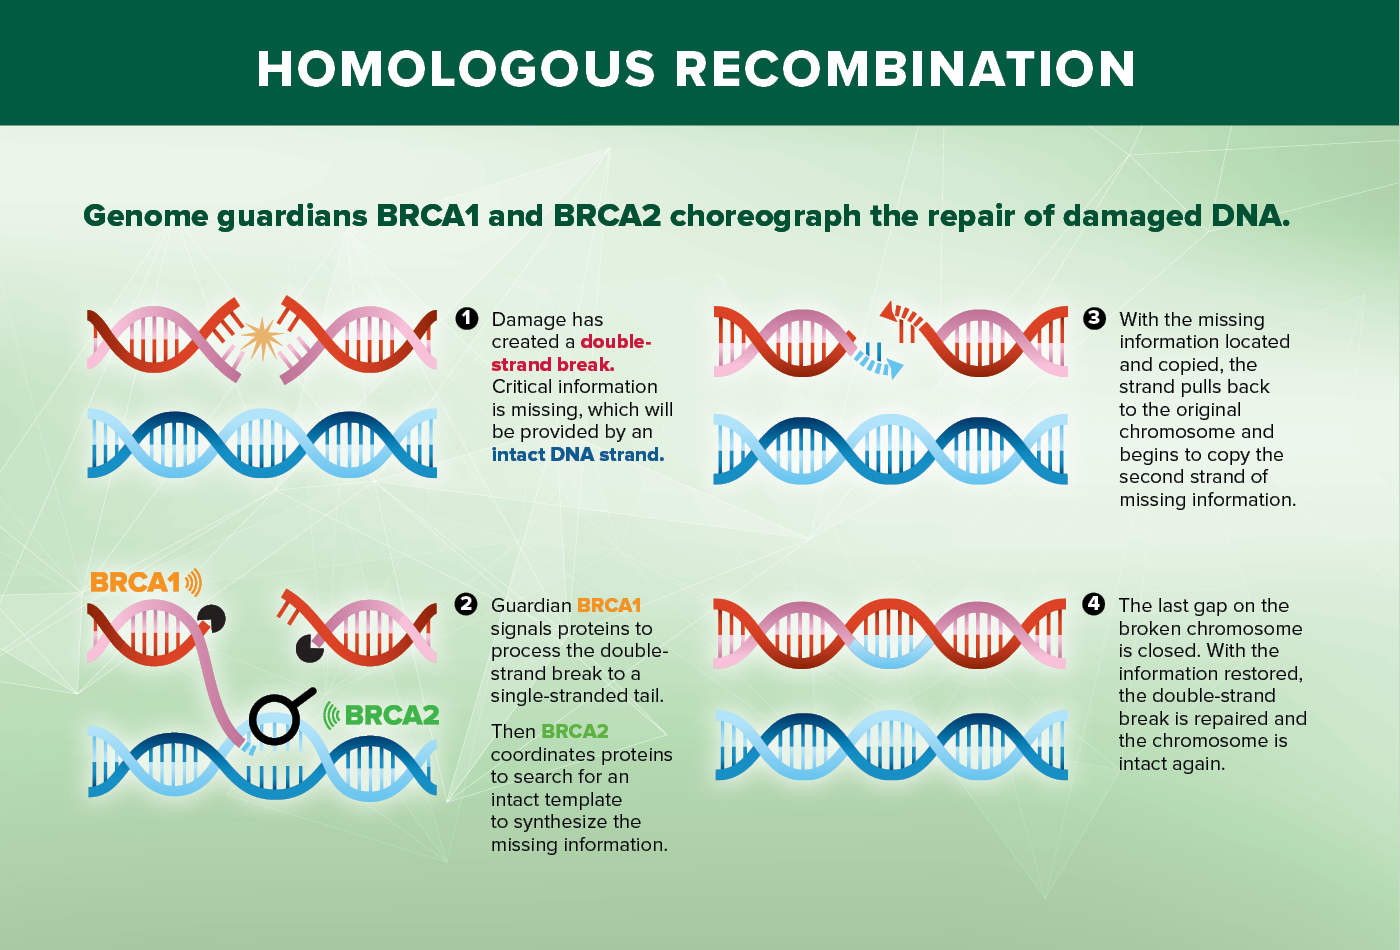 Homologous Recombination Diagram